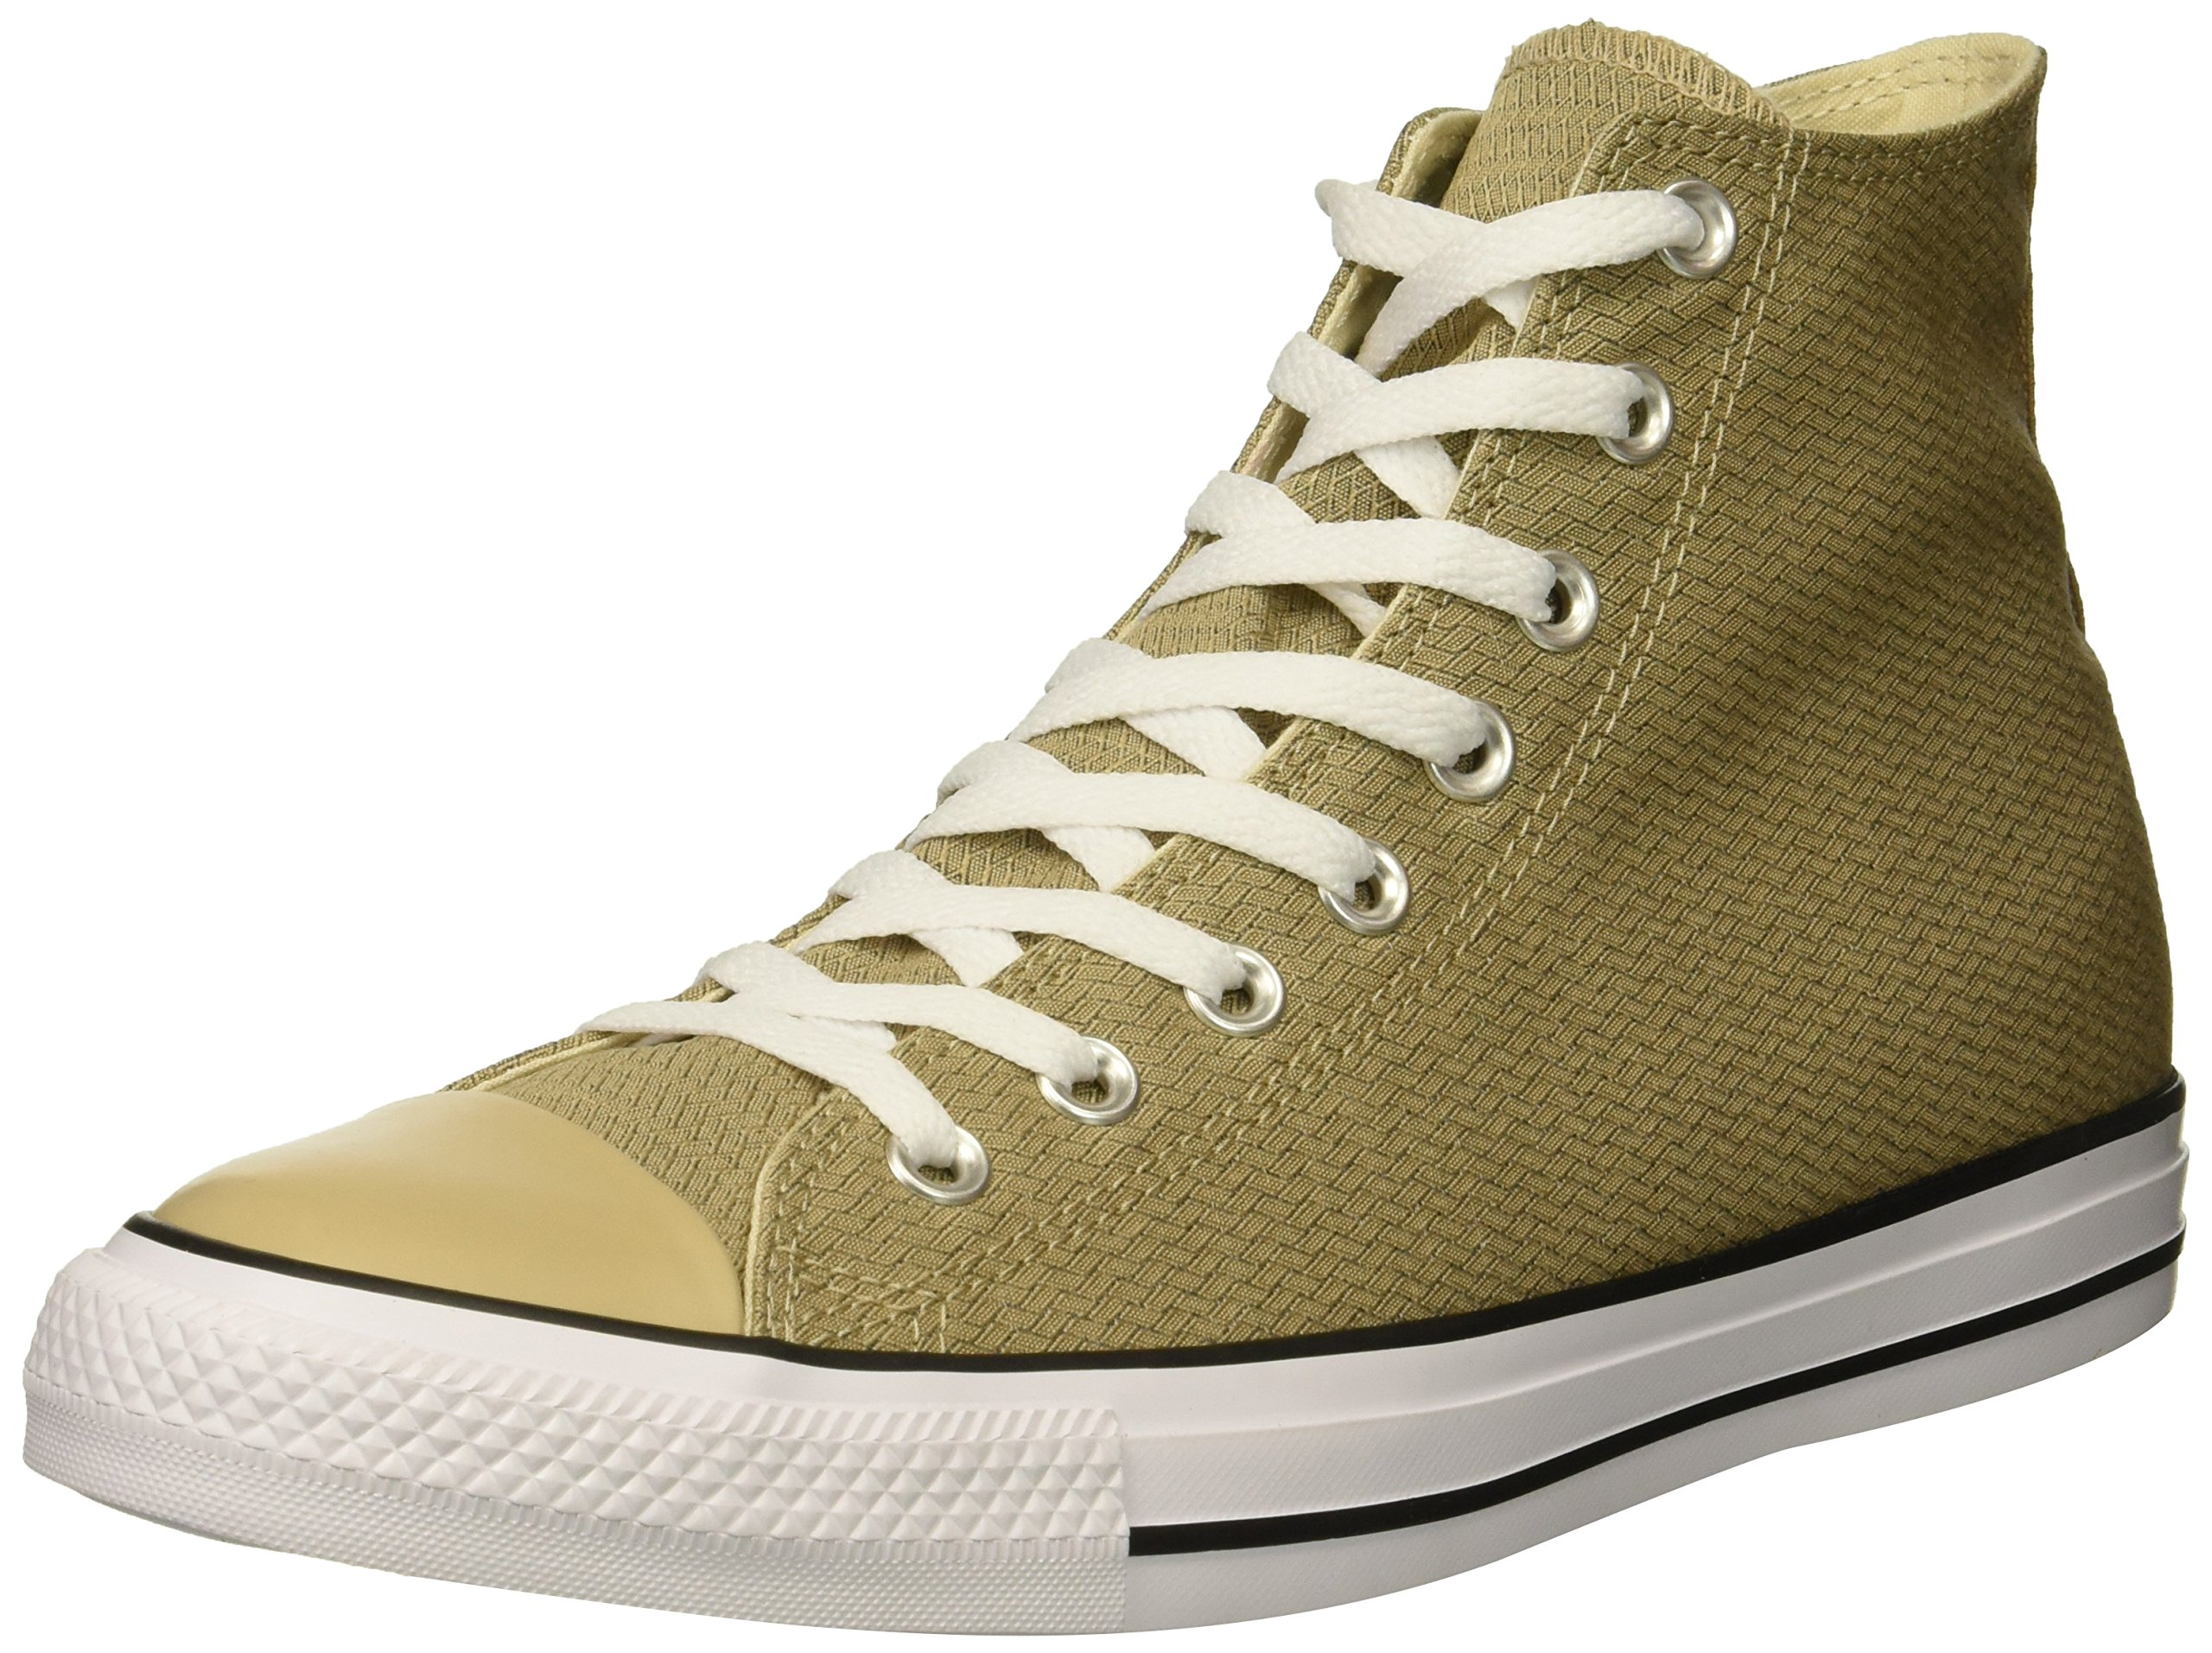 Details about Converse Men's Chuck Taylor All Star Basketweave H Choose SZcolor